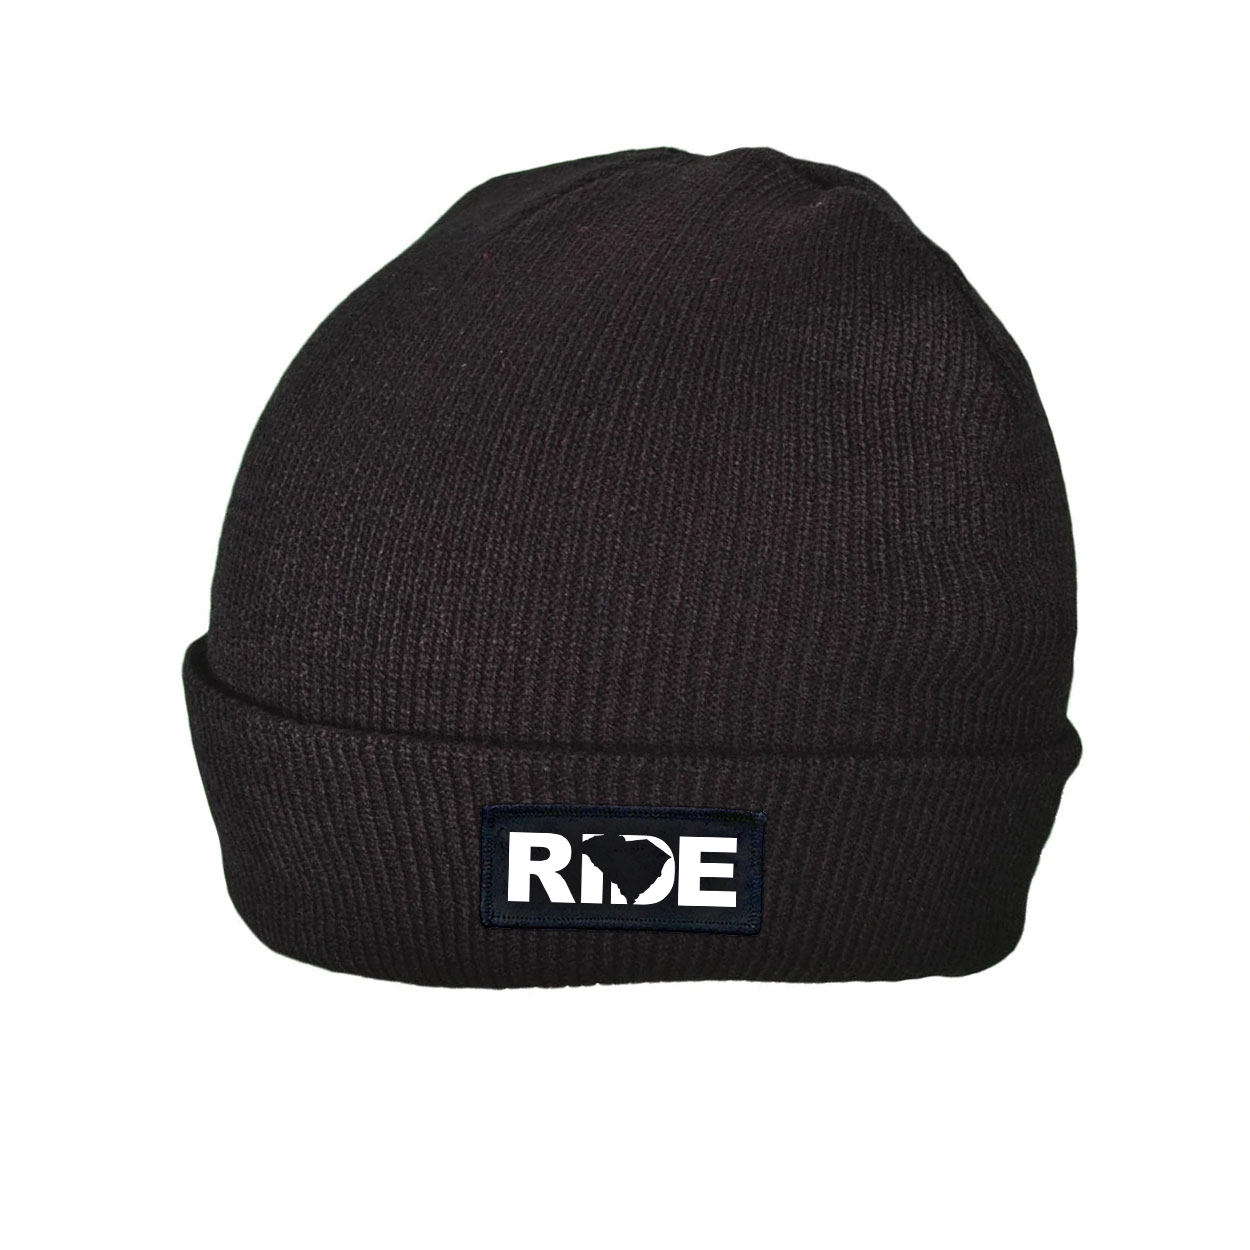 Ride South Carolina Night Out Woven Patch Roll Up Skully Beanie Black (White Logo)